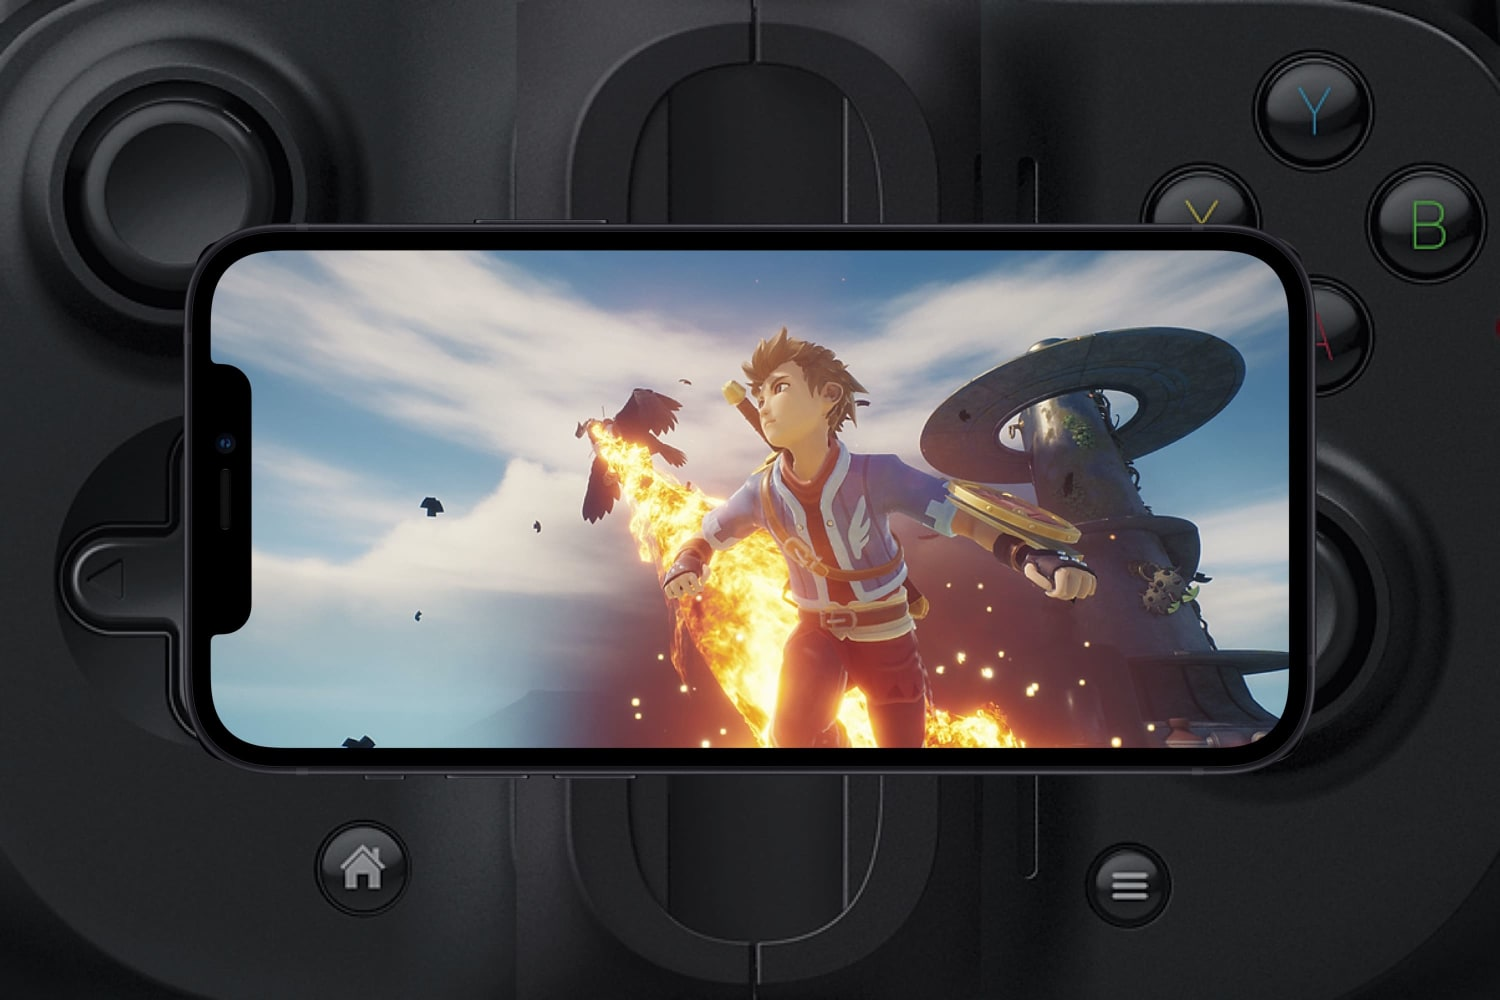 ios-compatible-razer-kishi-controller-now-available-from-apple-20201124-1